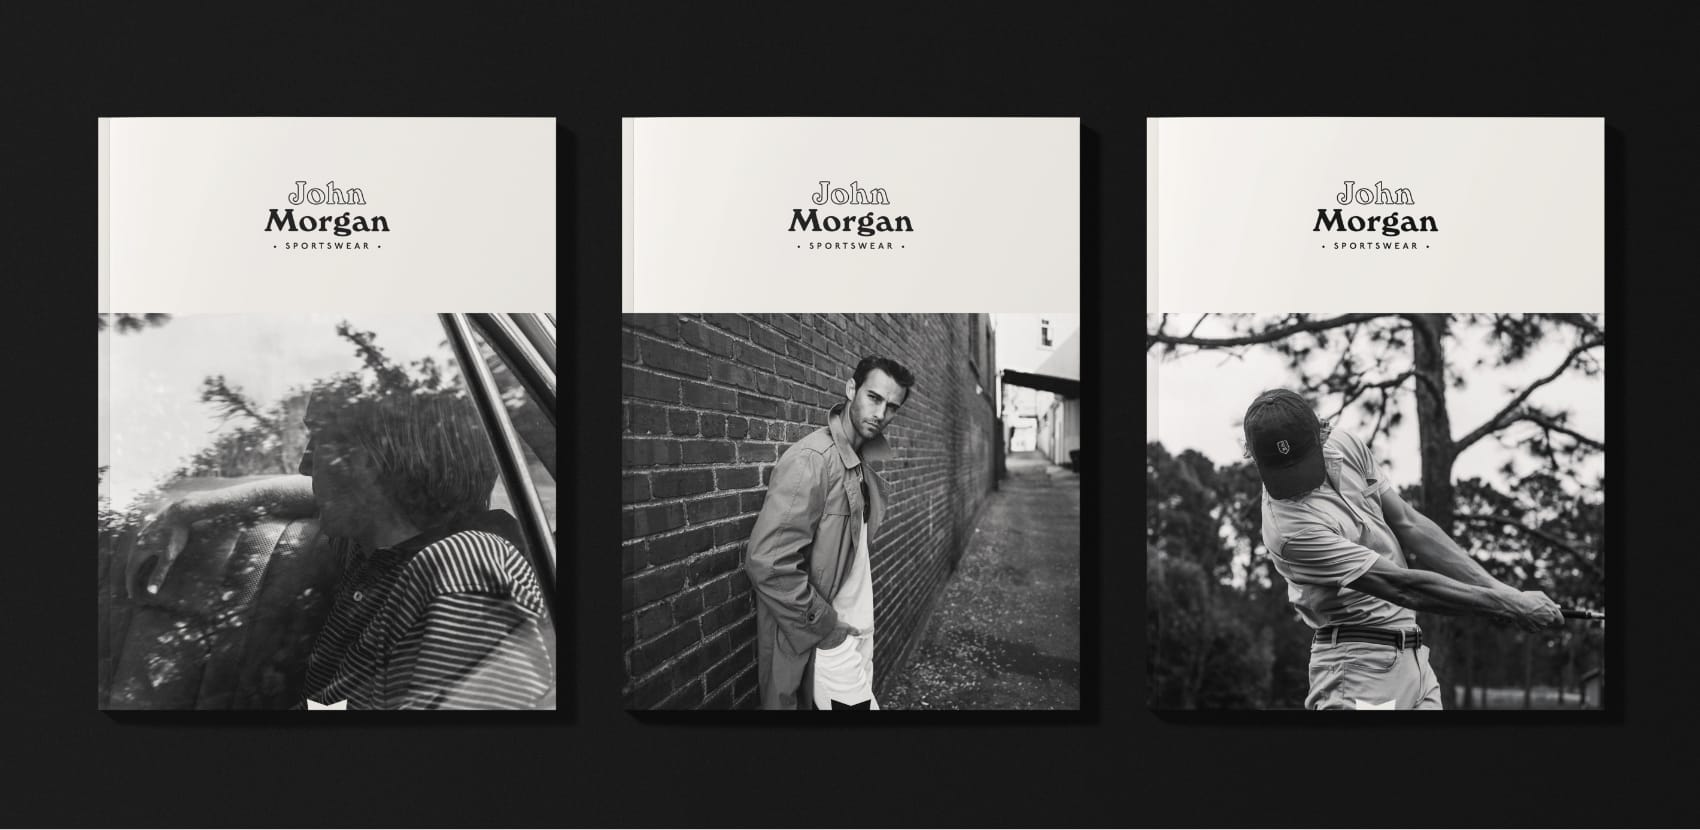 john morgan journal covers